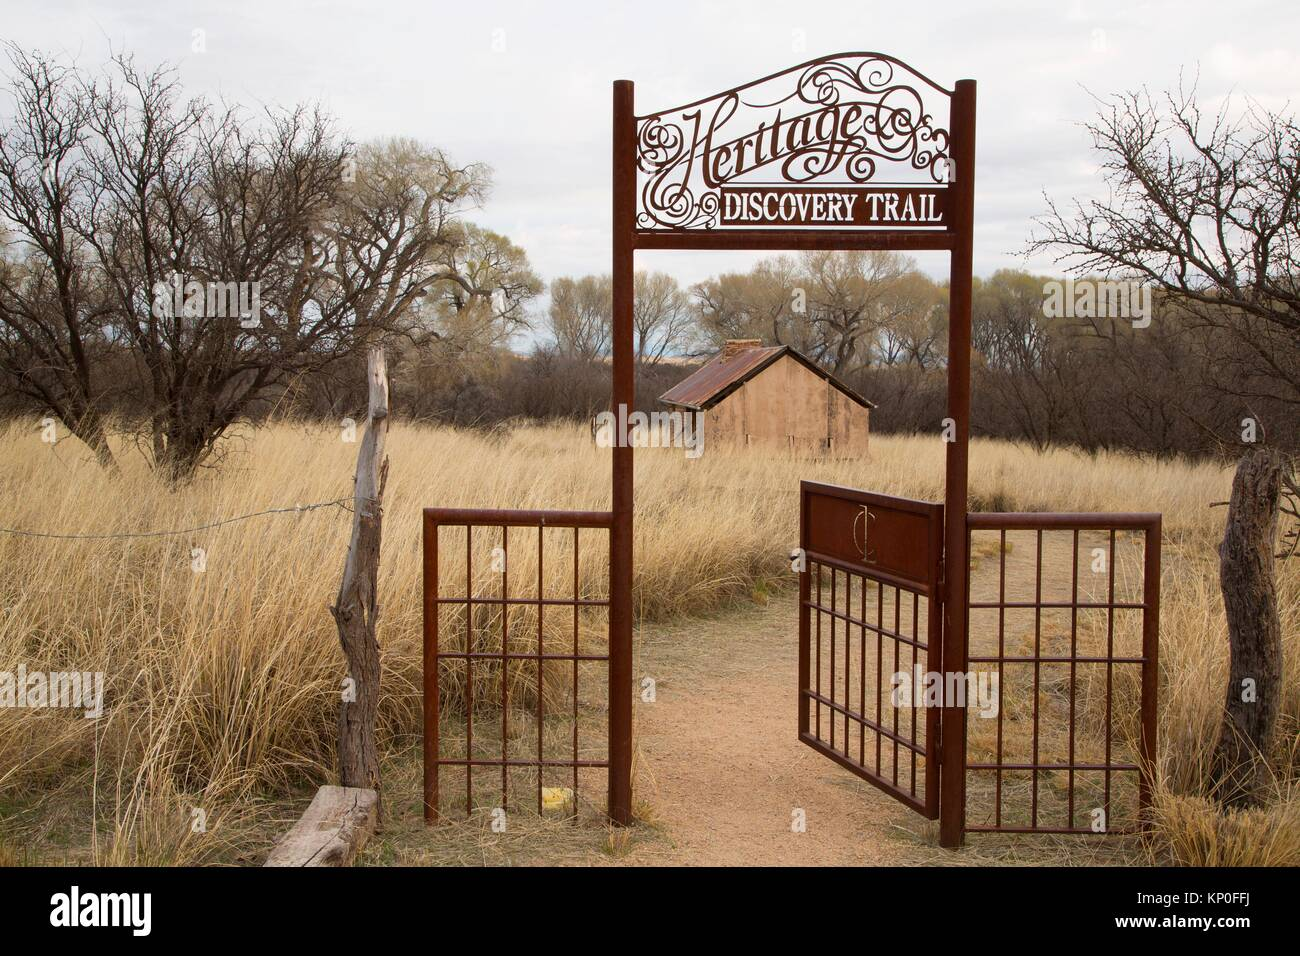 Heritage Discovery Trail Gateway, Las Cienegas National Conservation Area, Arizona. Stockbild